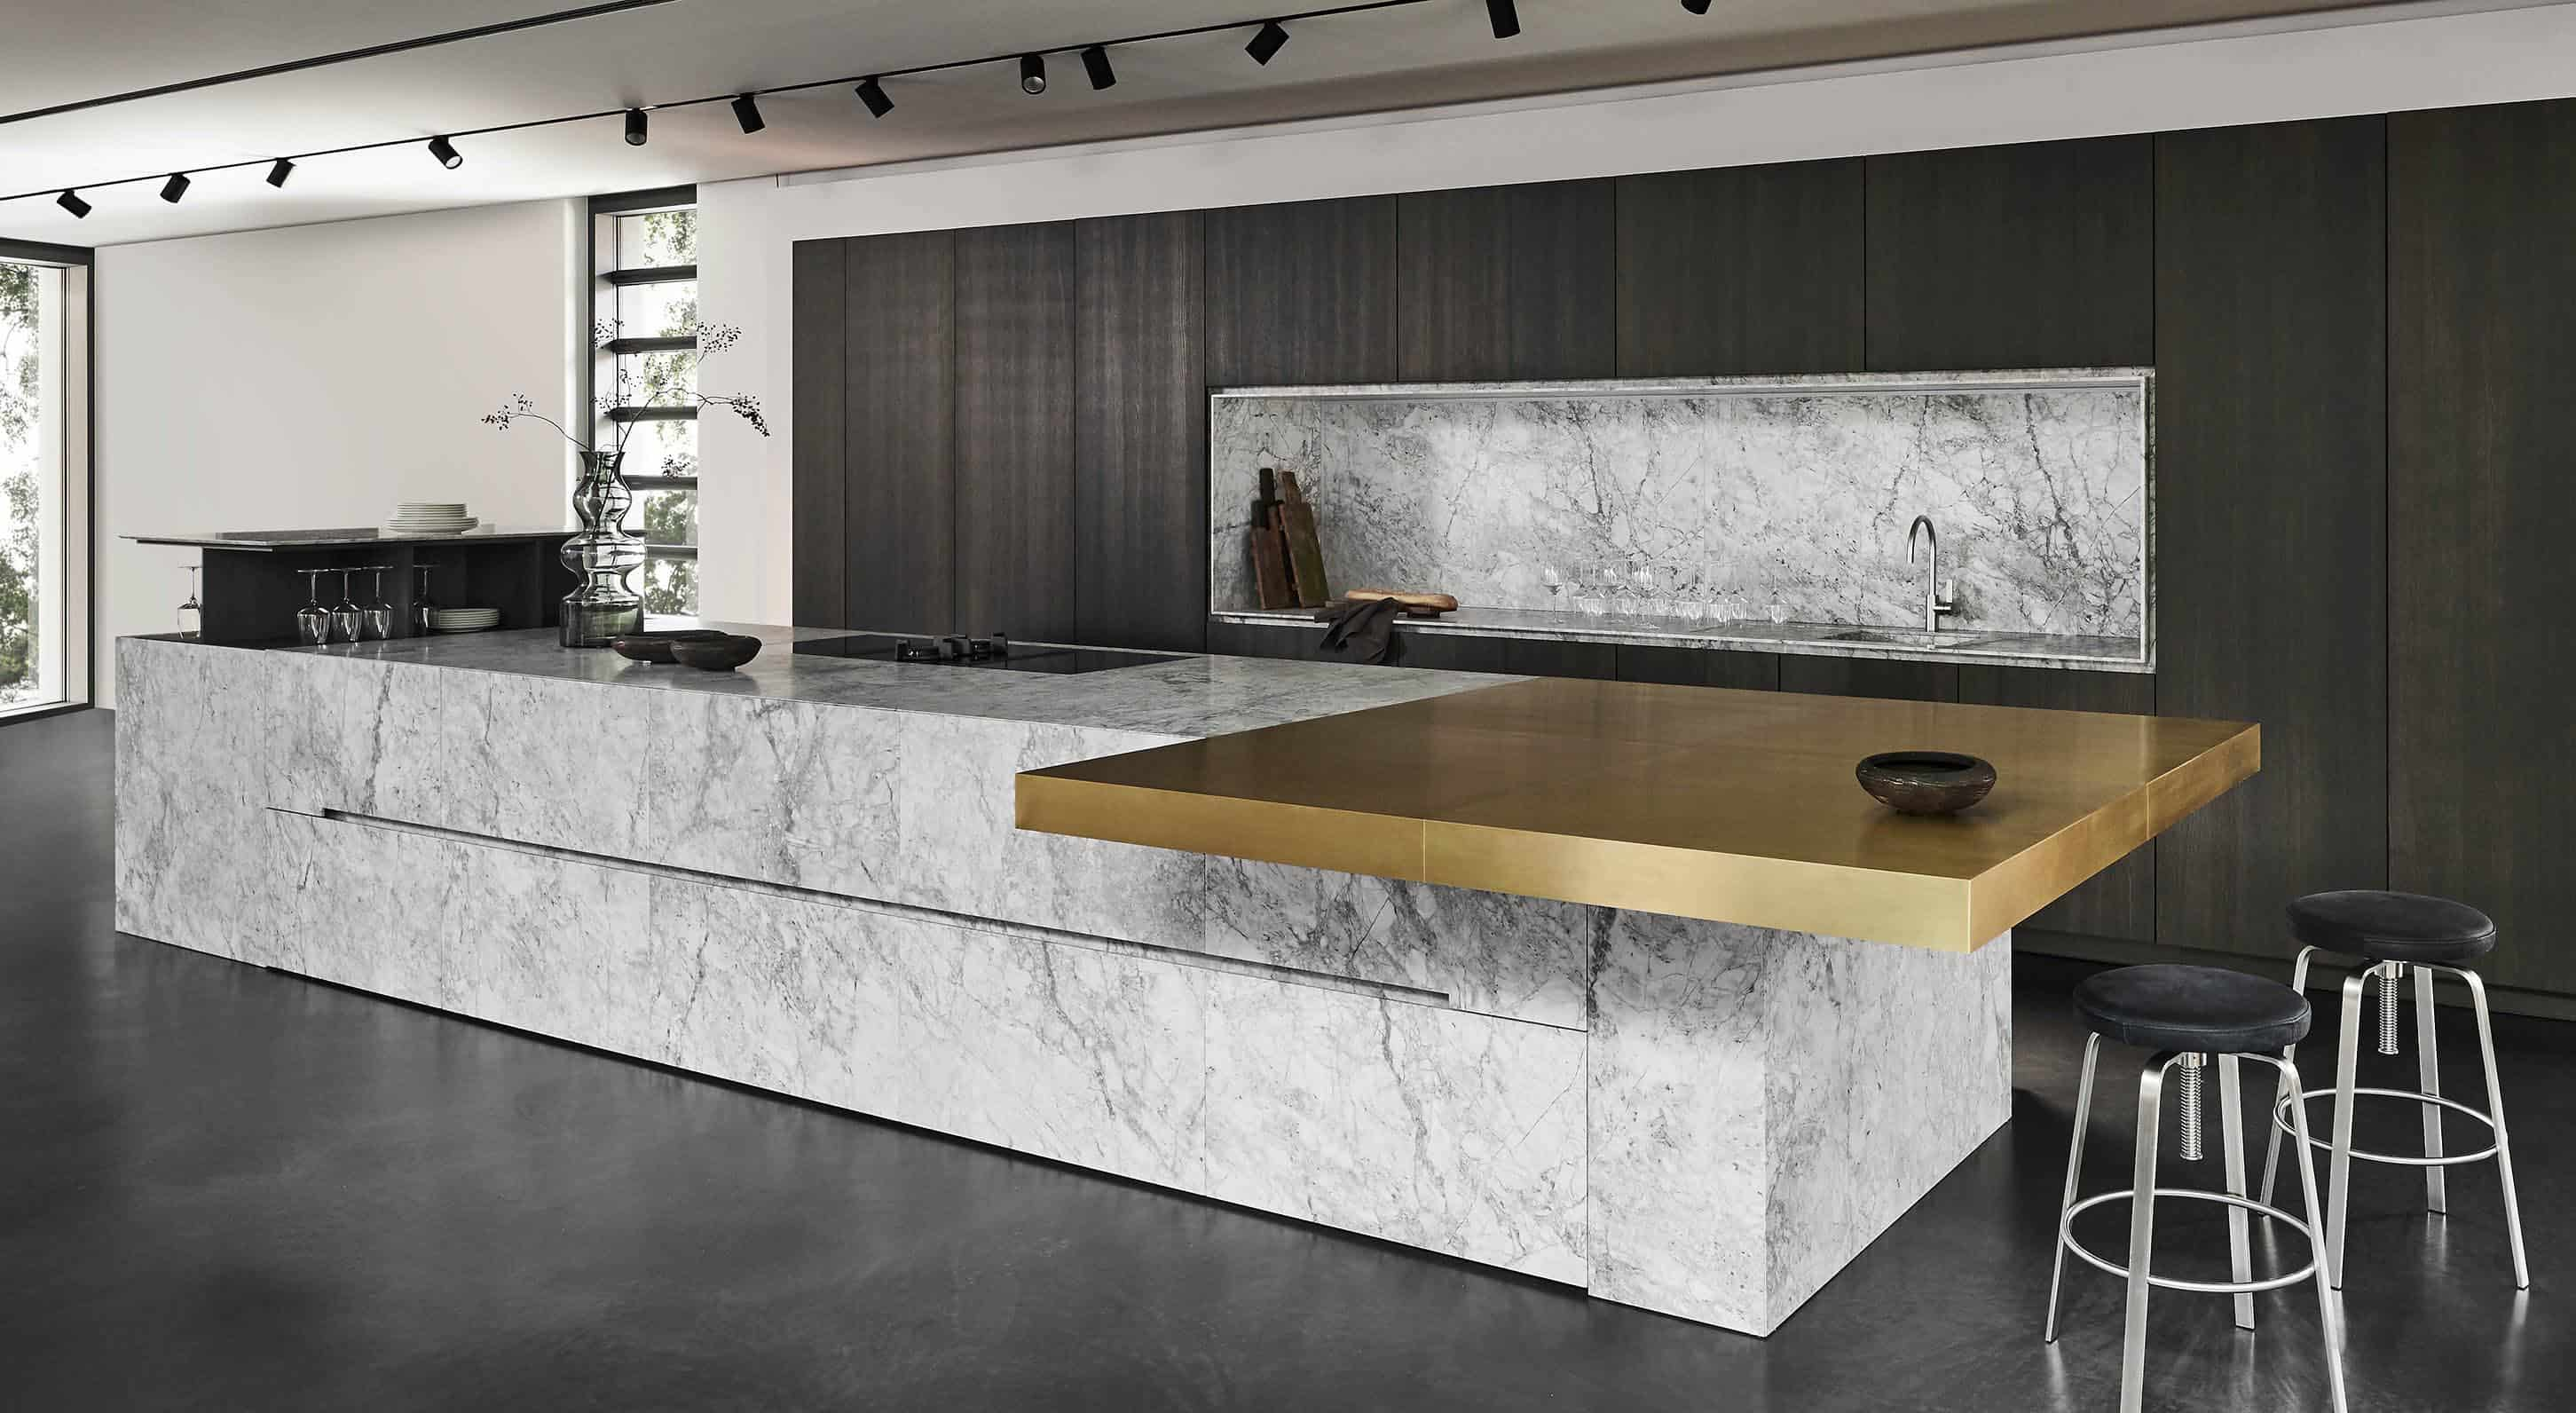 custom eggersmann kitchen using the unique cabinetry collection with Bianco Nuvola Quartzite, Brushed Brass, and Core Ash Veneer finishes